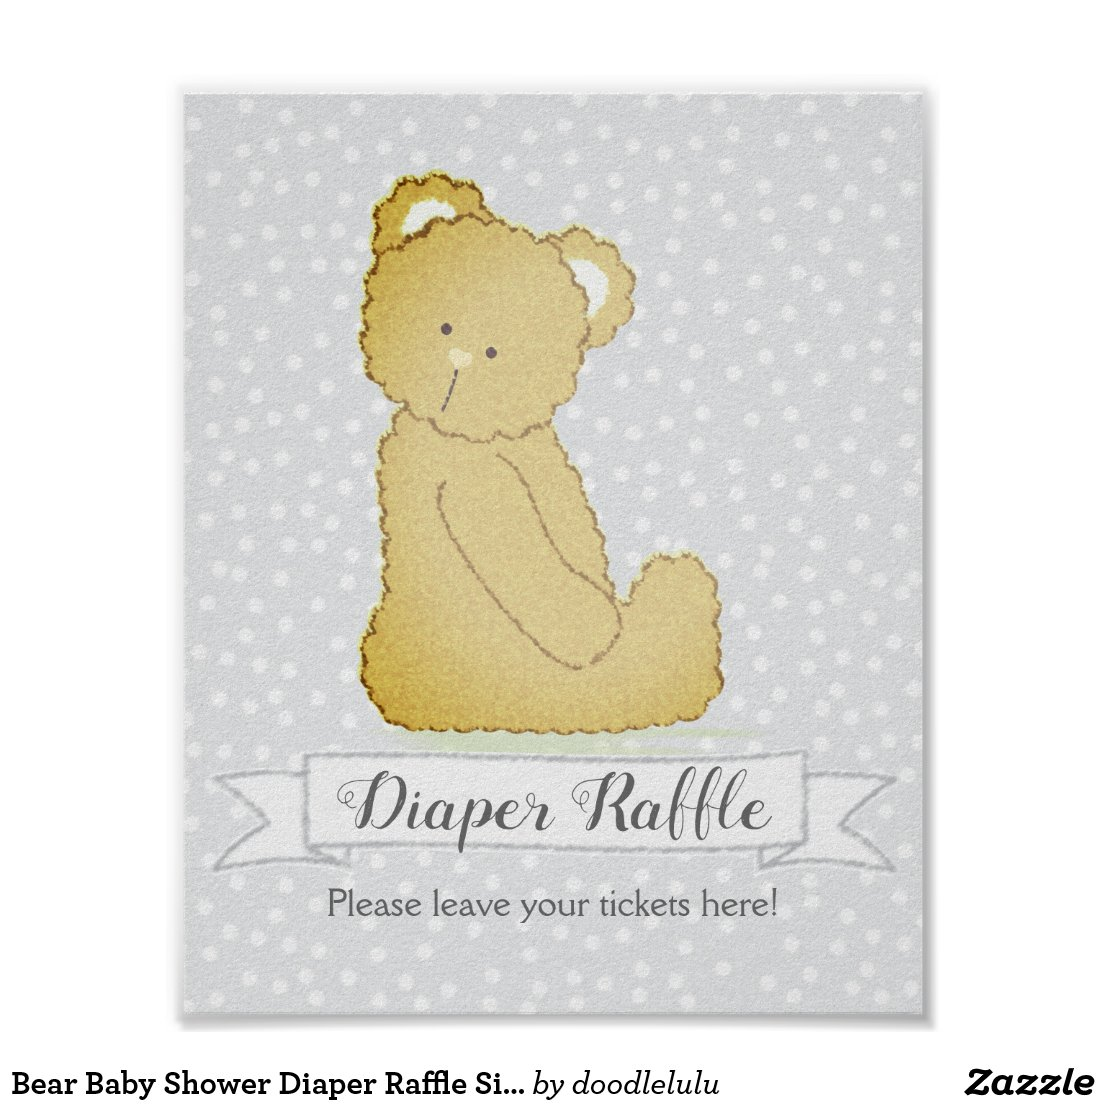 Bear Baby Shower Diaper Raffle Sign gray and brown